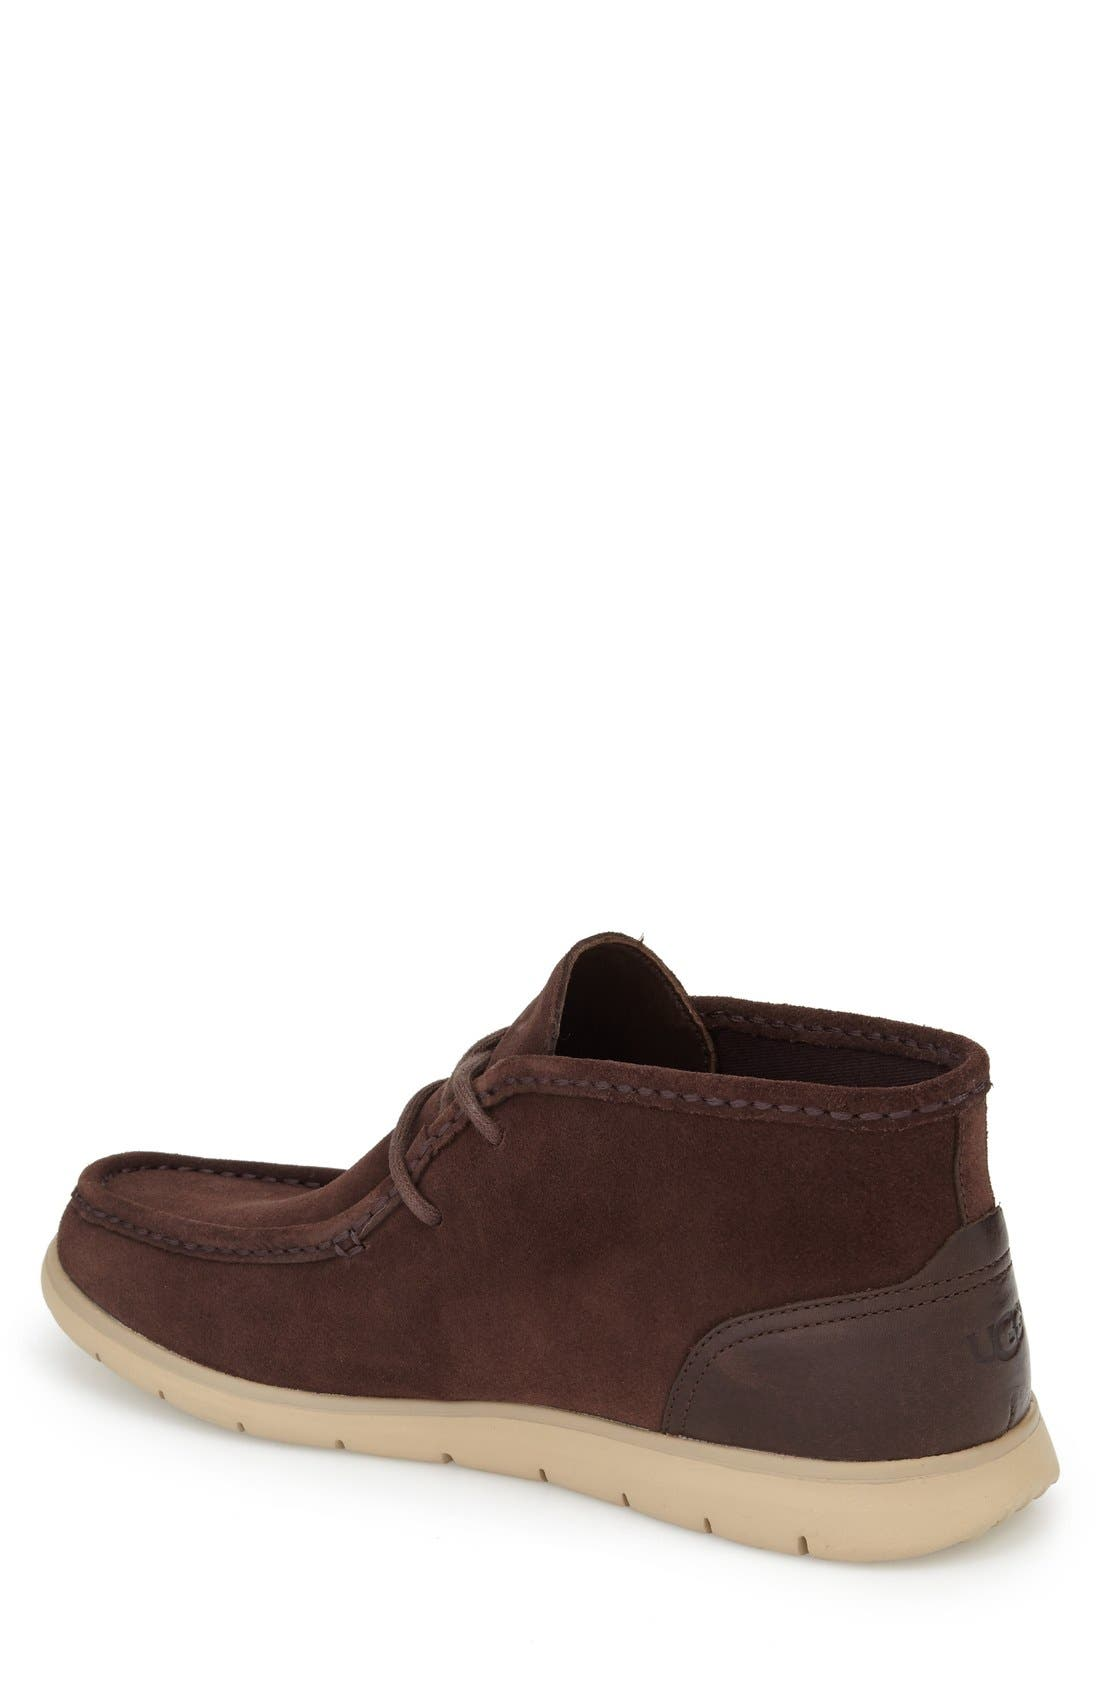 Alternate Image 2  - UGG® 'Hendrickson' Chukka Boot (Men)